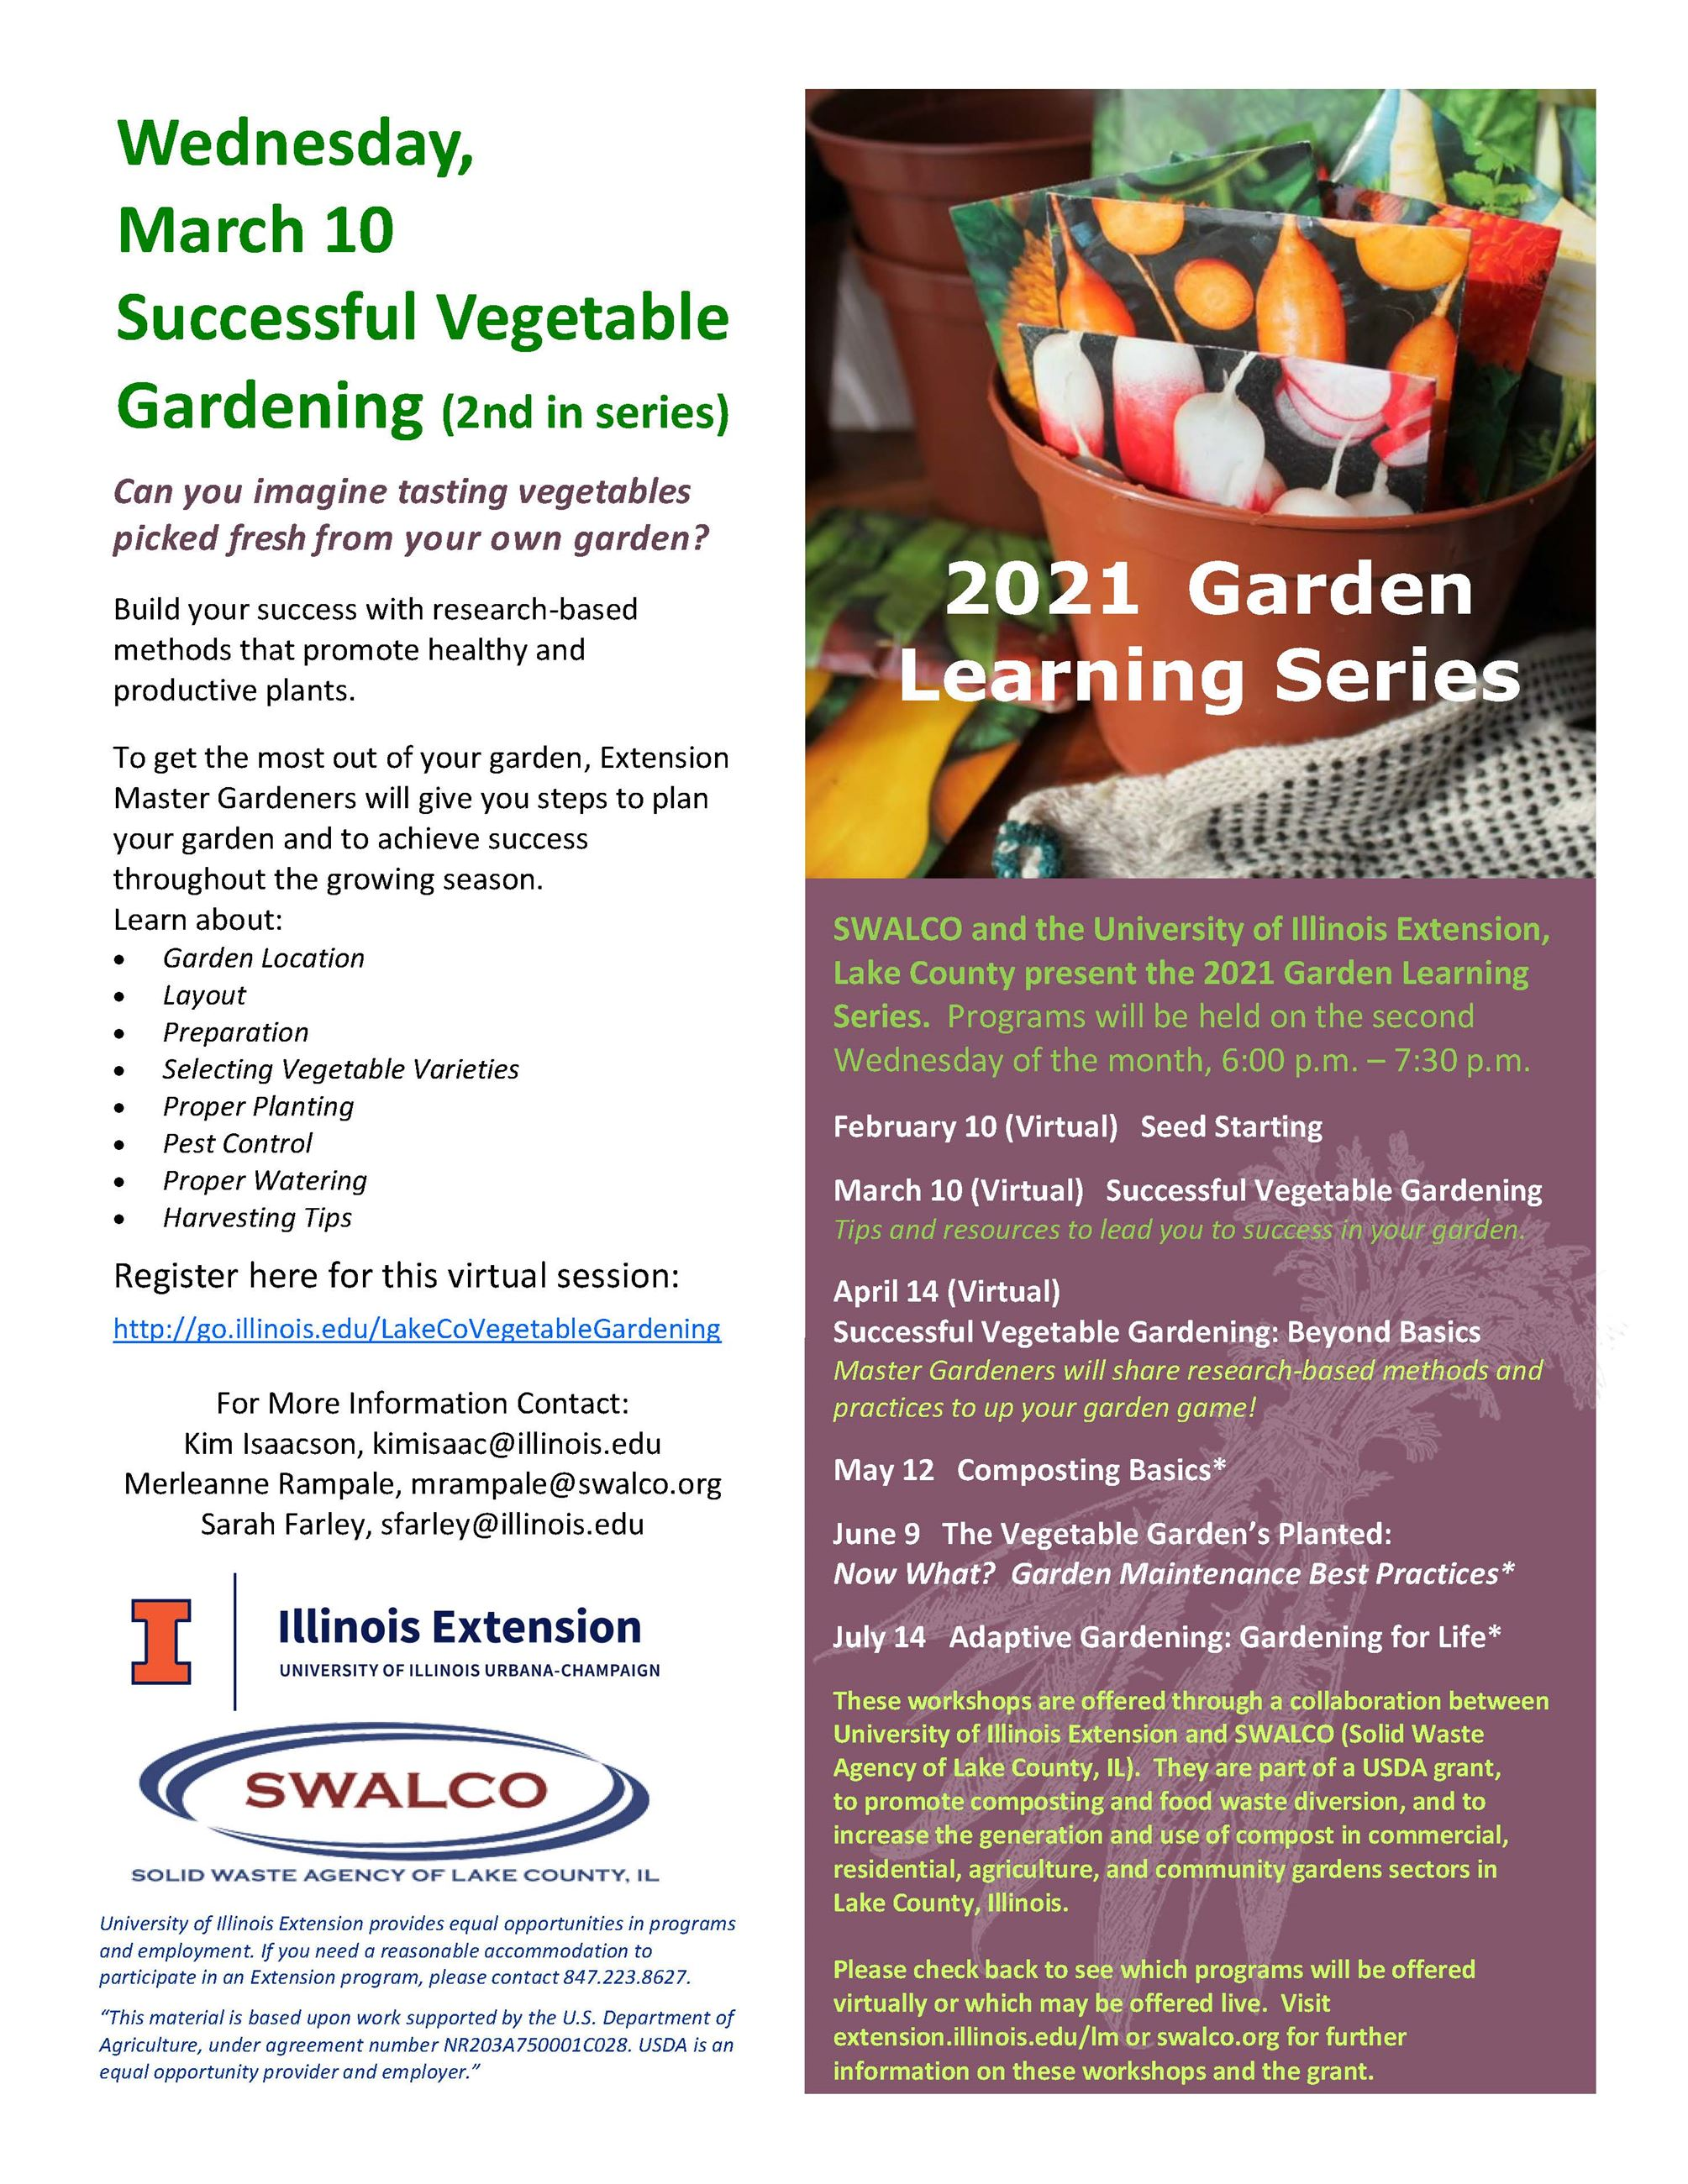 2021 Gardening Series March UIE and SWALCO